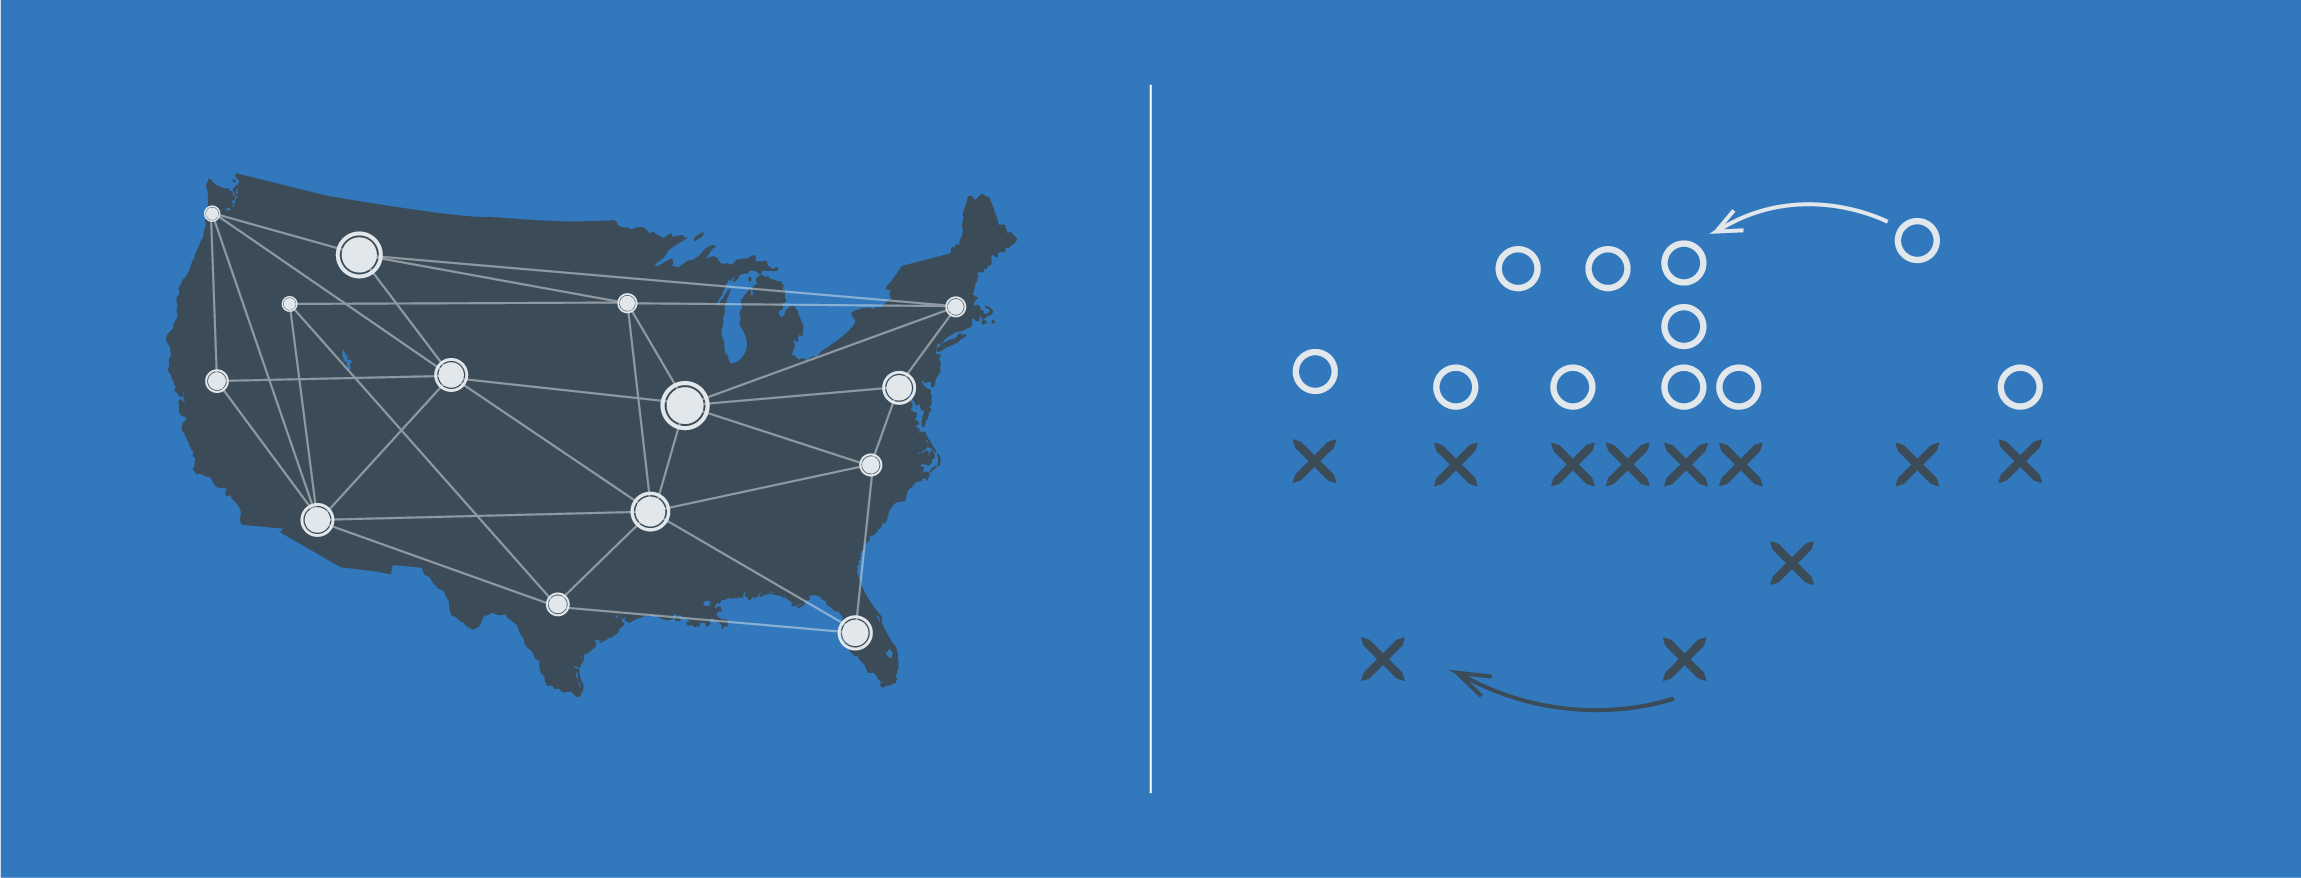 Football or Supply Chain The Playbook_Side by side